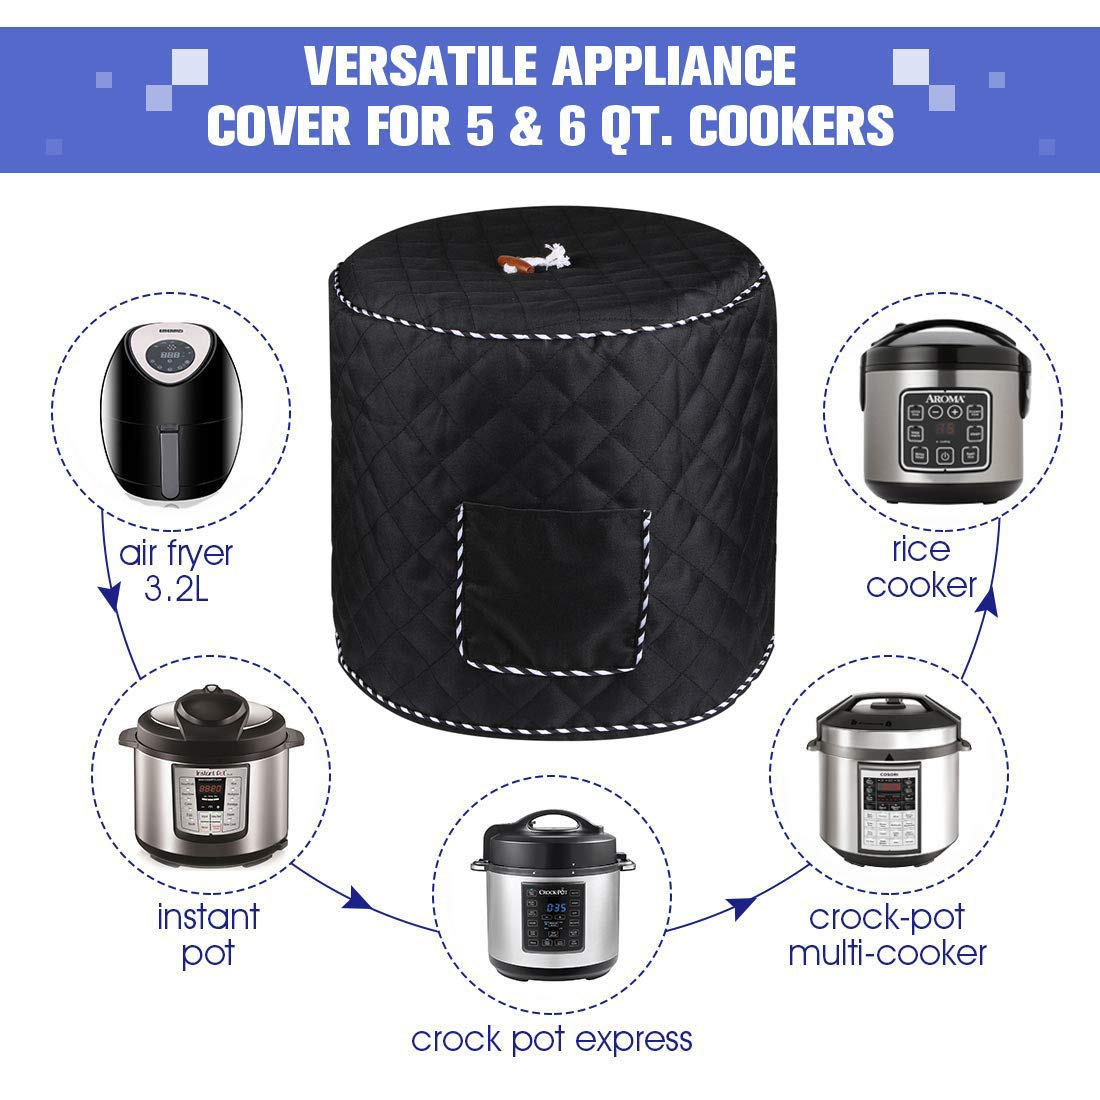 Black Evermarket Stand Mixer Dust Proof Cover with Pocket and Organizer Bag for Kitchenaid,Sunbeam,Cuisinart,Hamilton Mixer